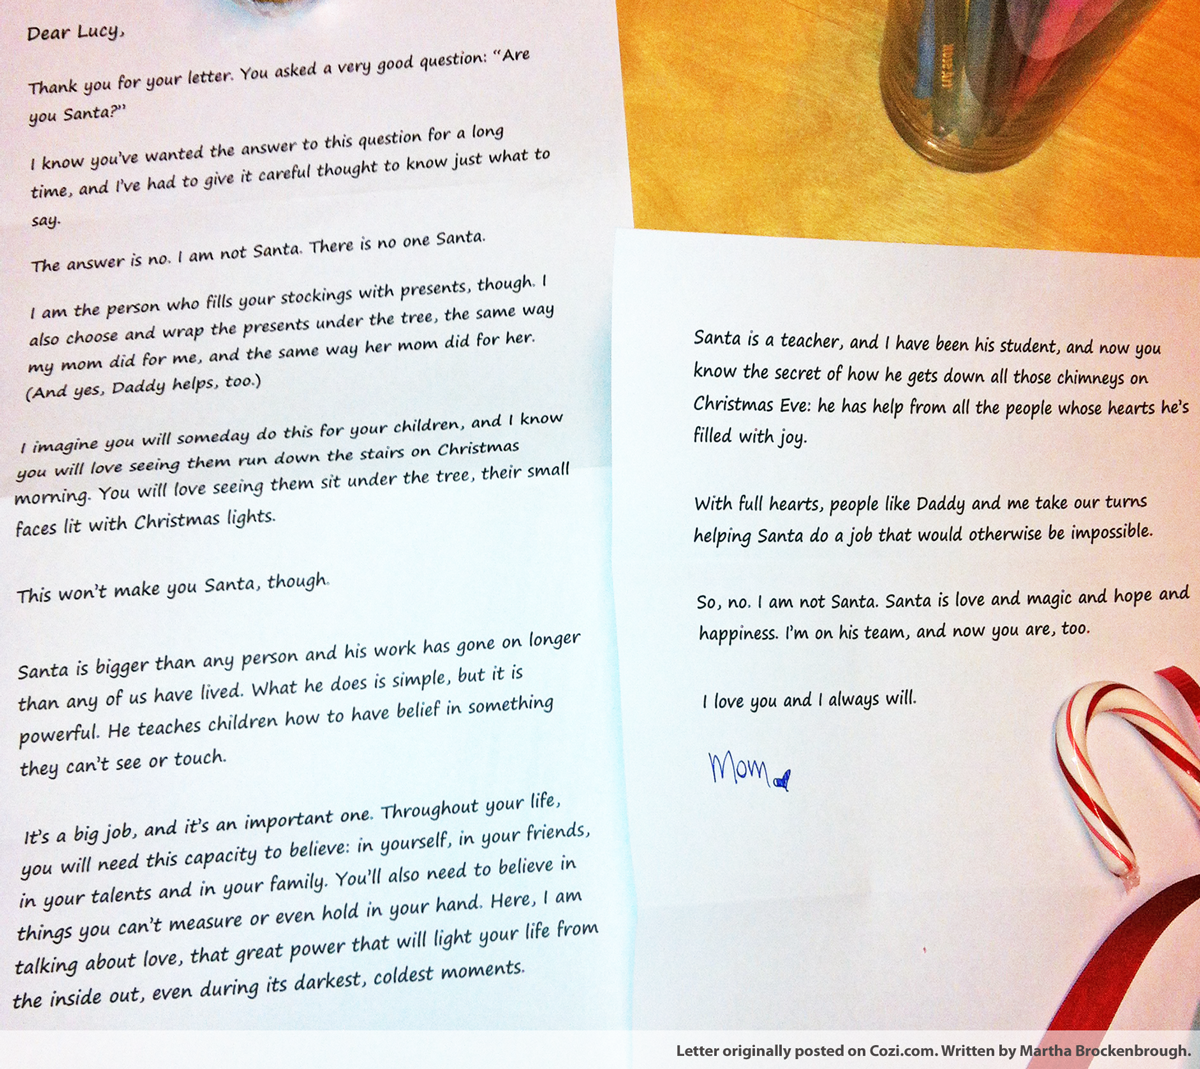 The truth about Santa Love this letter and will keep it